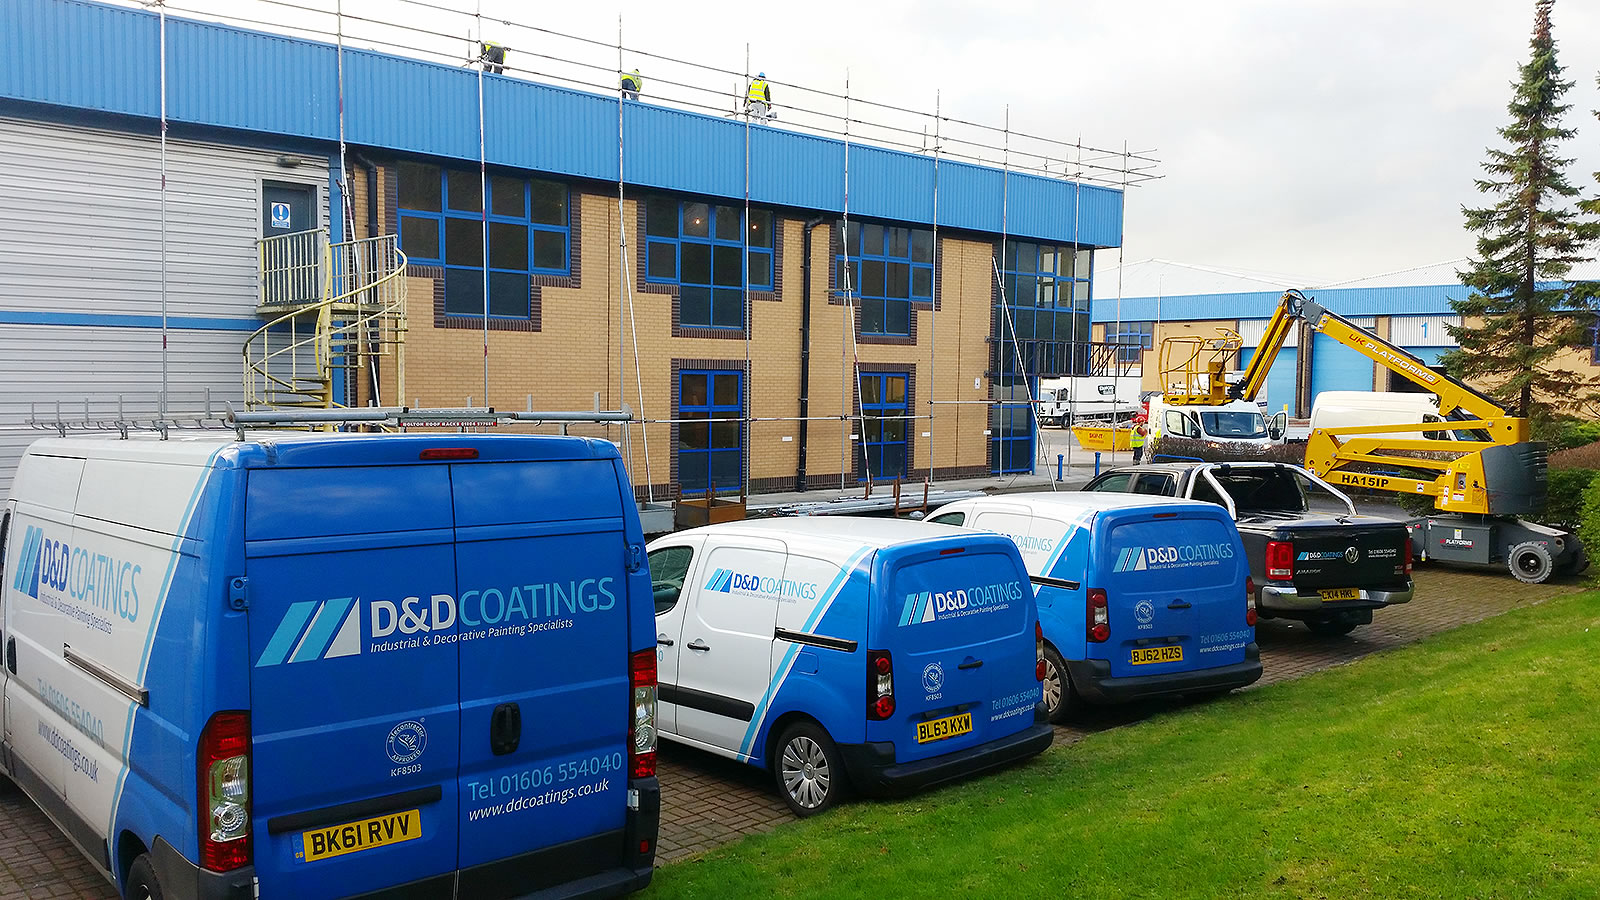 dd coatings vans on site